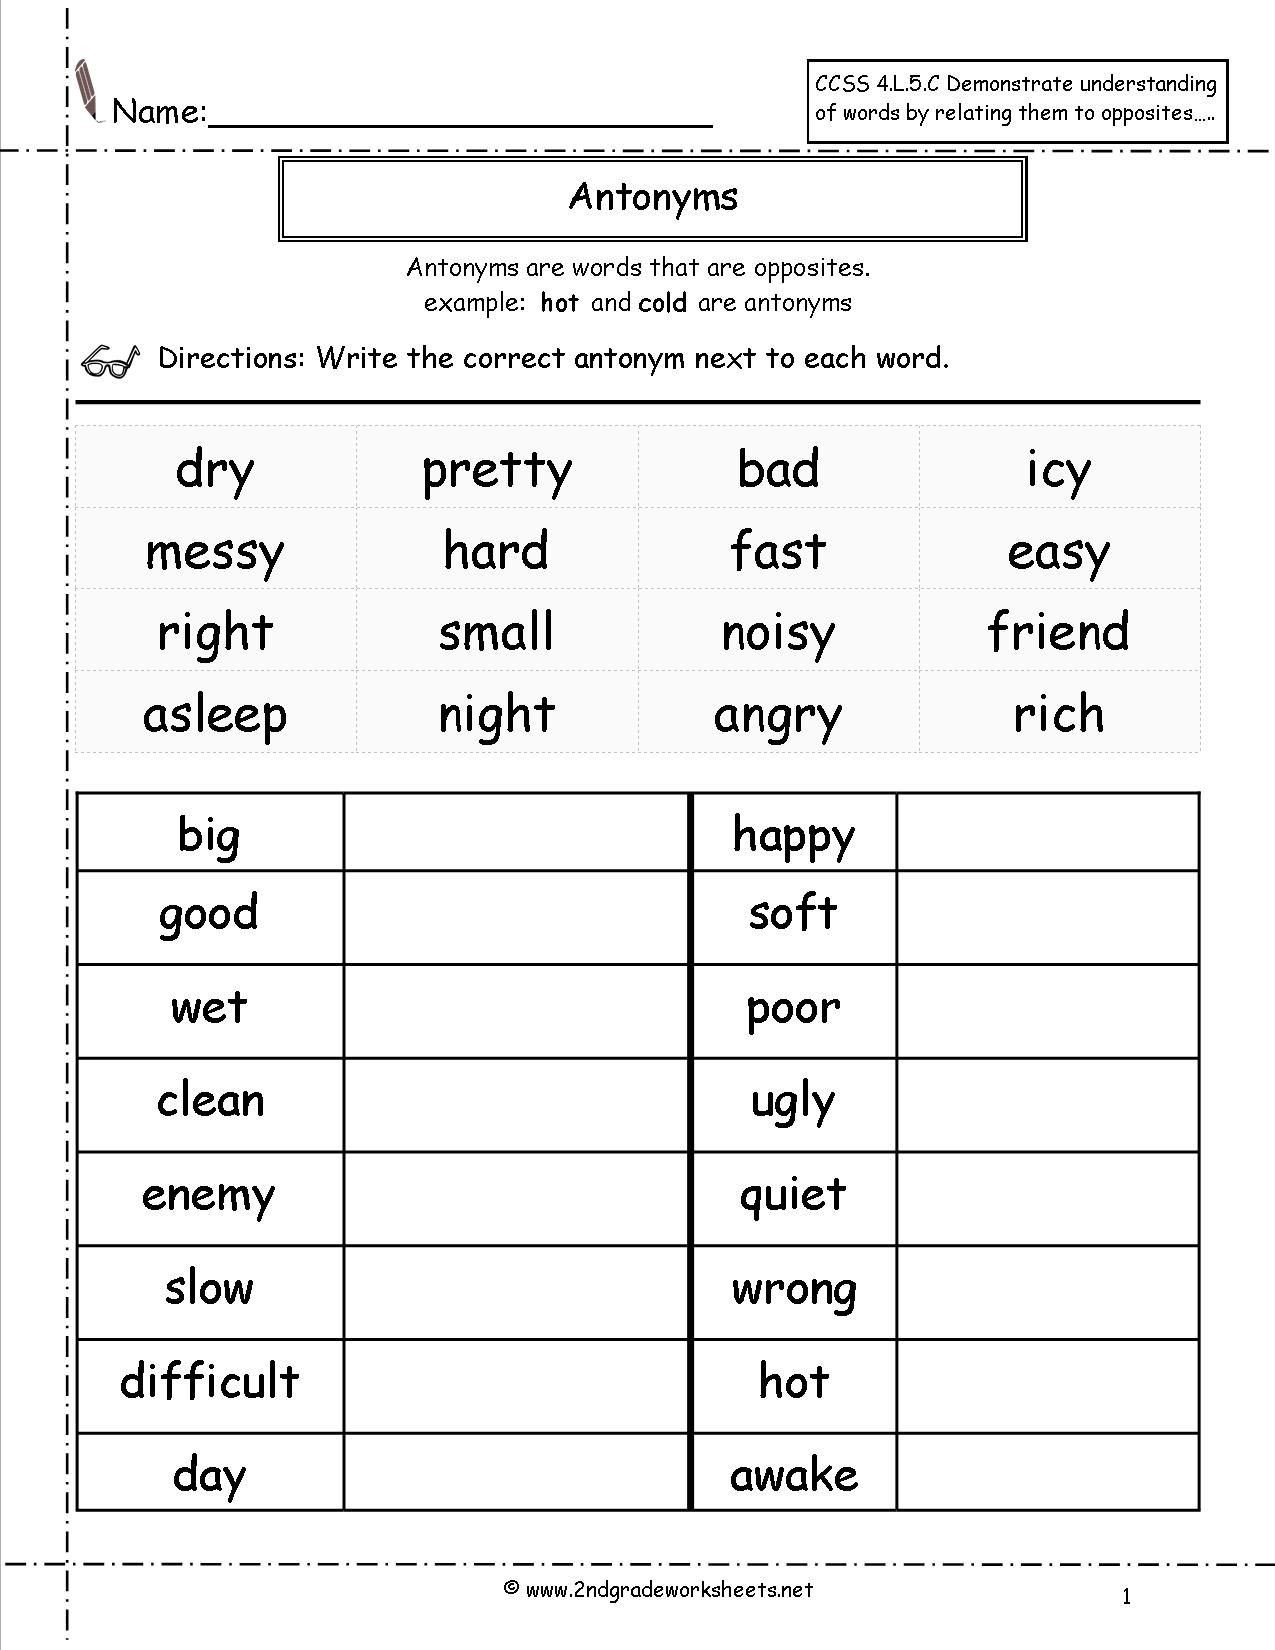 Antonyms Worksheets for Kindergarten Synonyms and Antonyms Worksheets